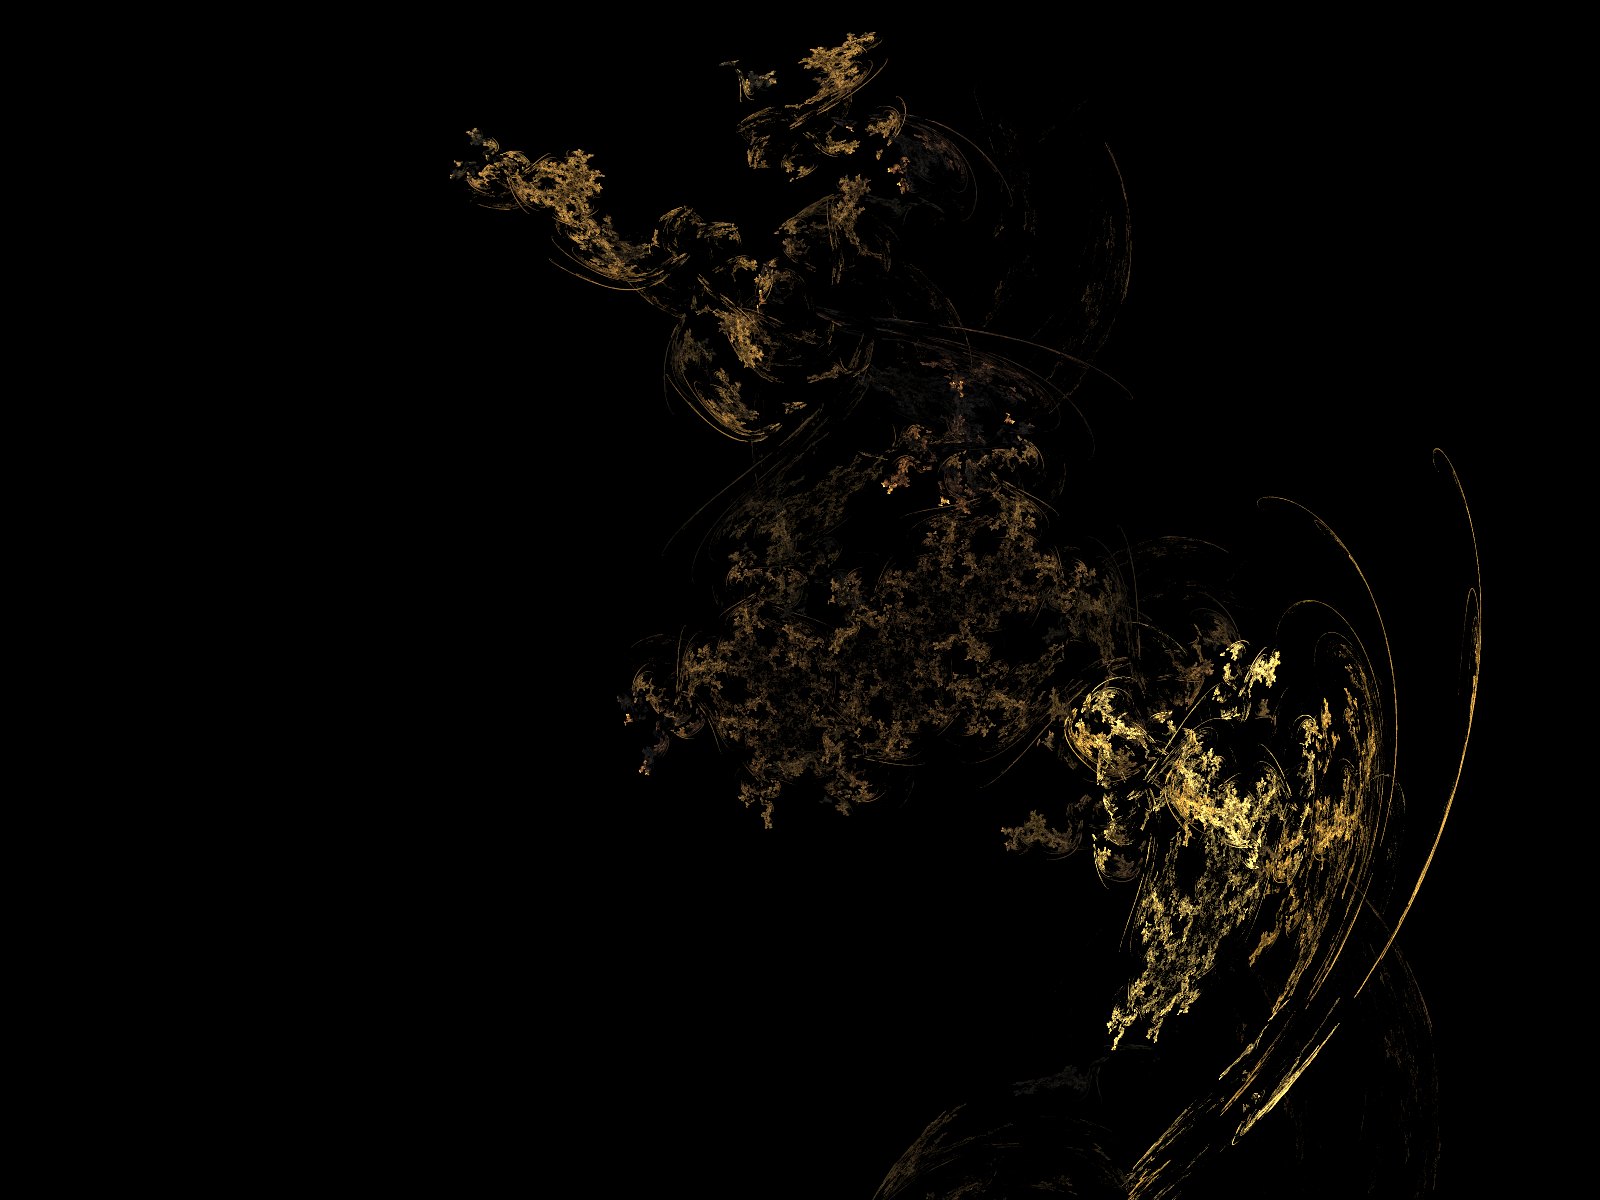 Black And Gold Wallpapers Wallpapersafari